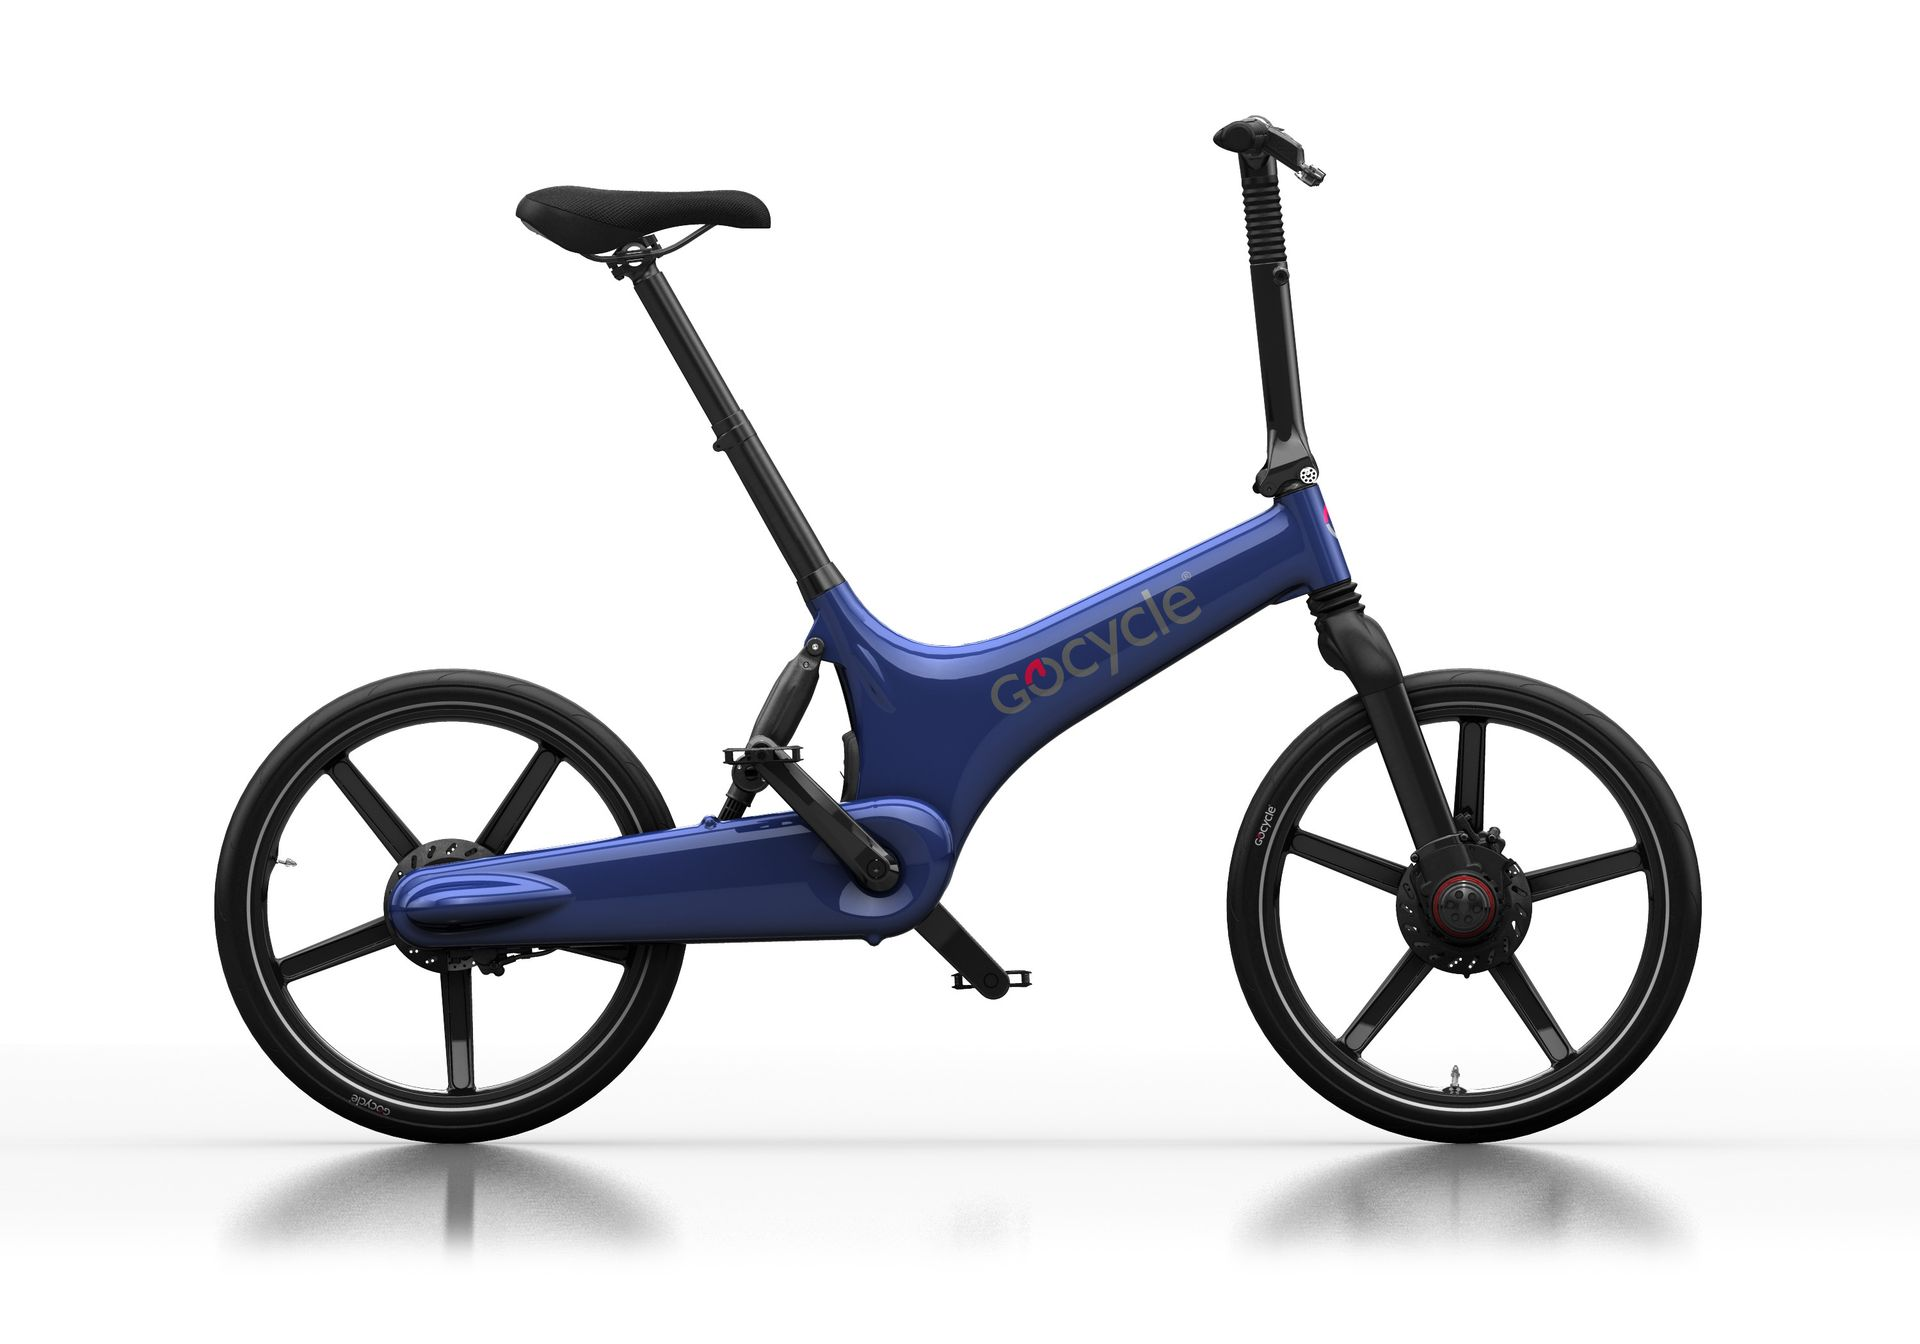 Gocycle E-Bike G3